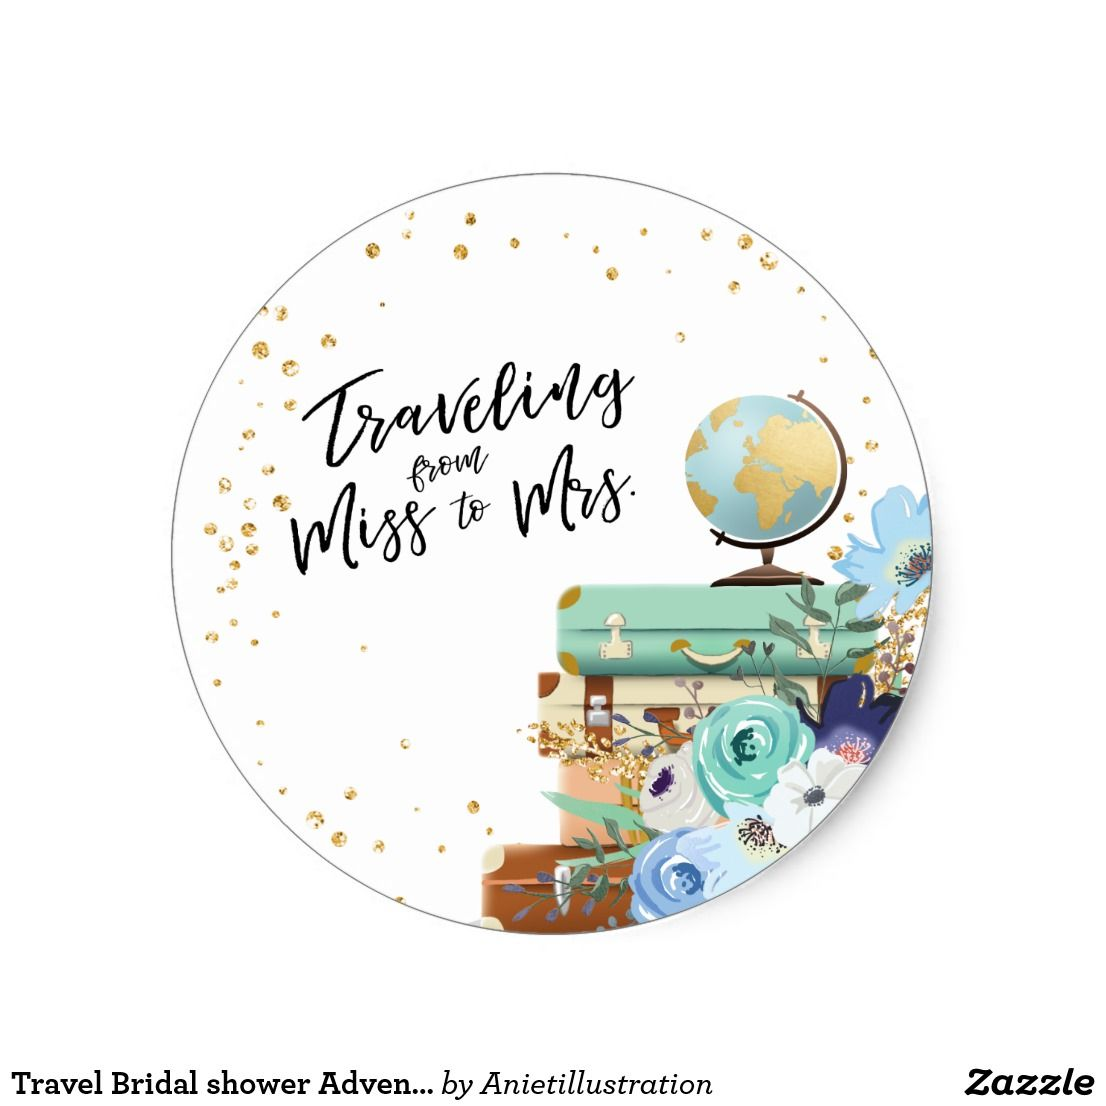 Travel bridal shower adventure miss to mrs favor classic round sticker ♥ your own sticker cupcake topper favor tag or envelope seal travel theme